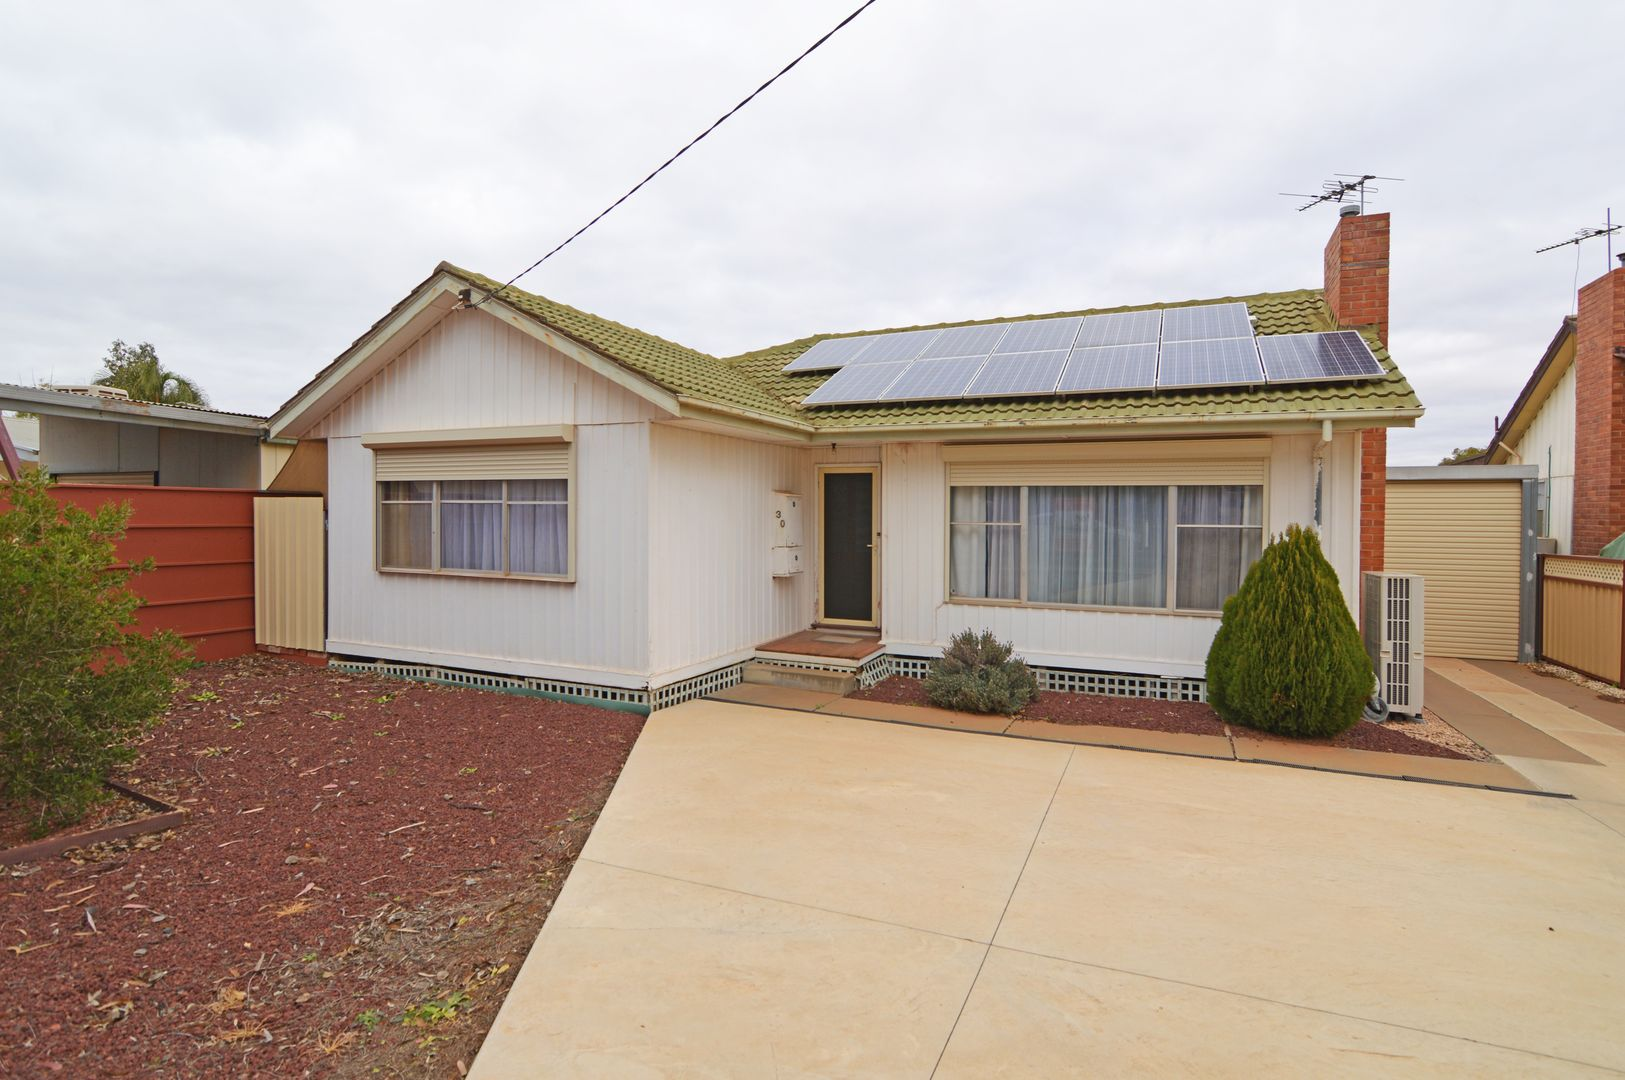 30 Commercial Street, Merbein VIC 3505, Image 1